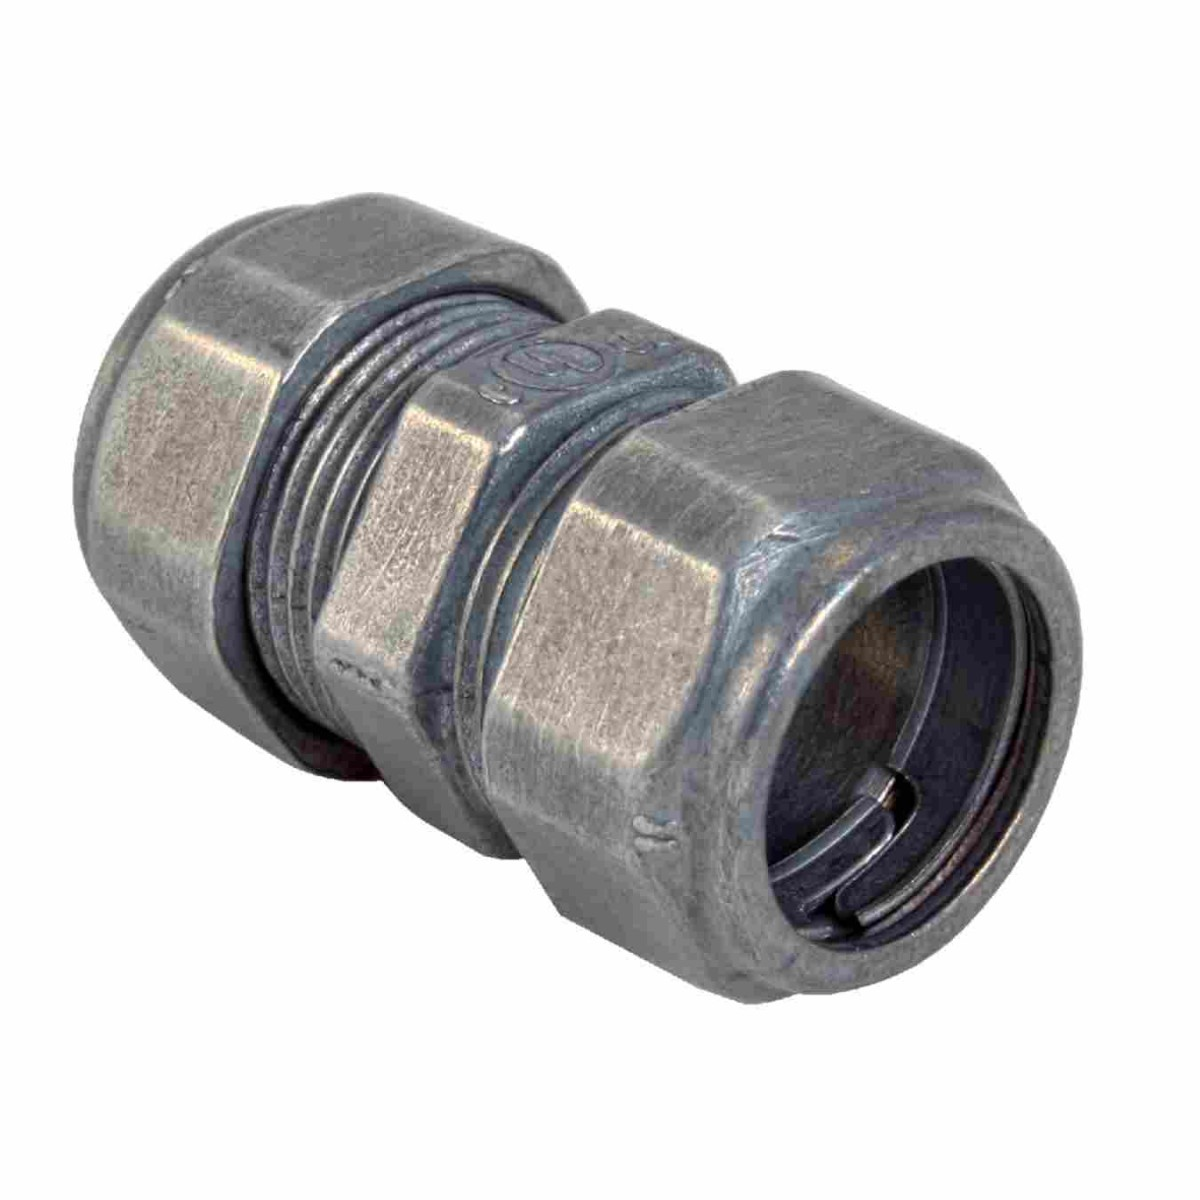 Emt Pipe Cap Electricity Network Construction Material